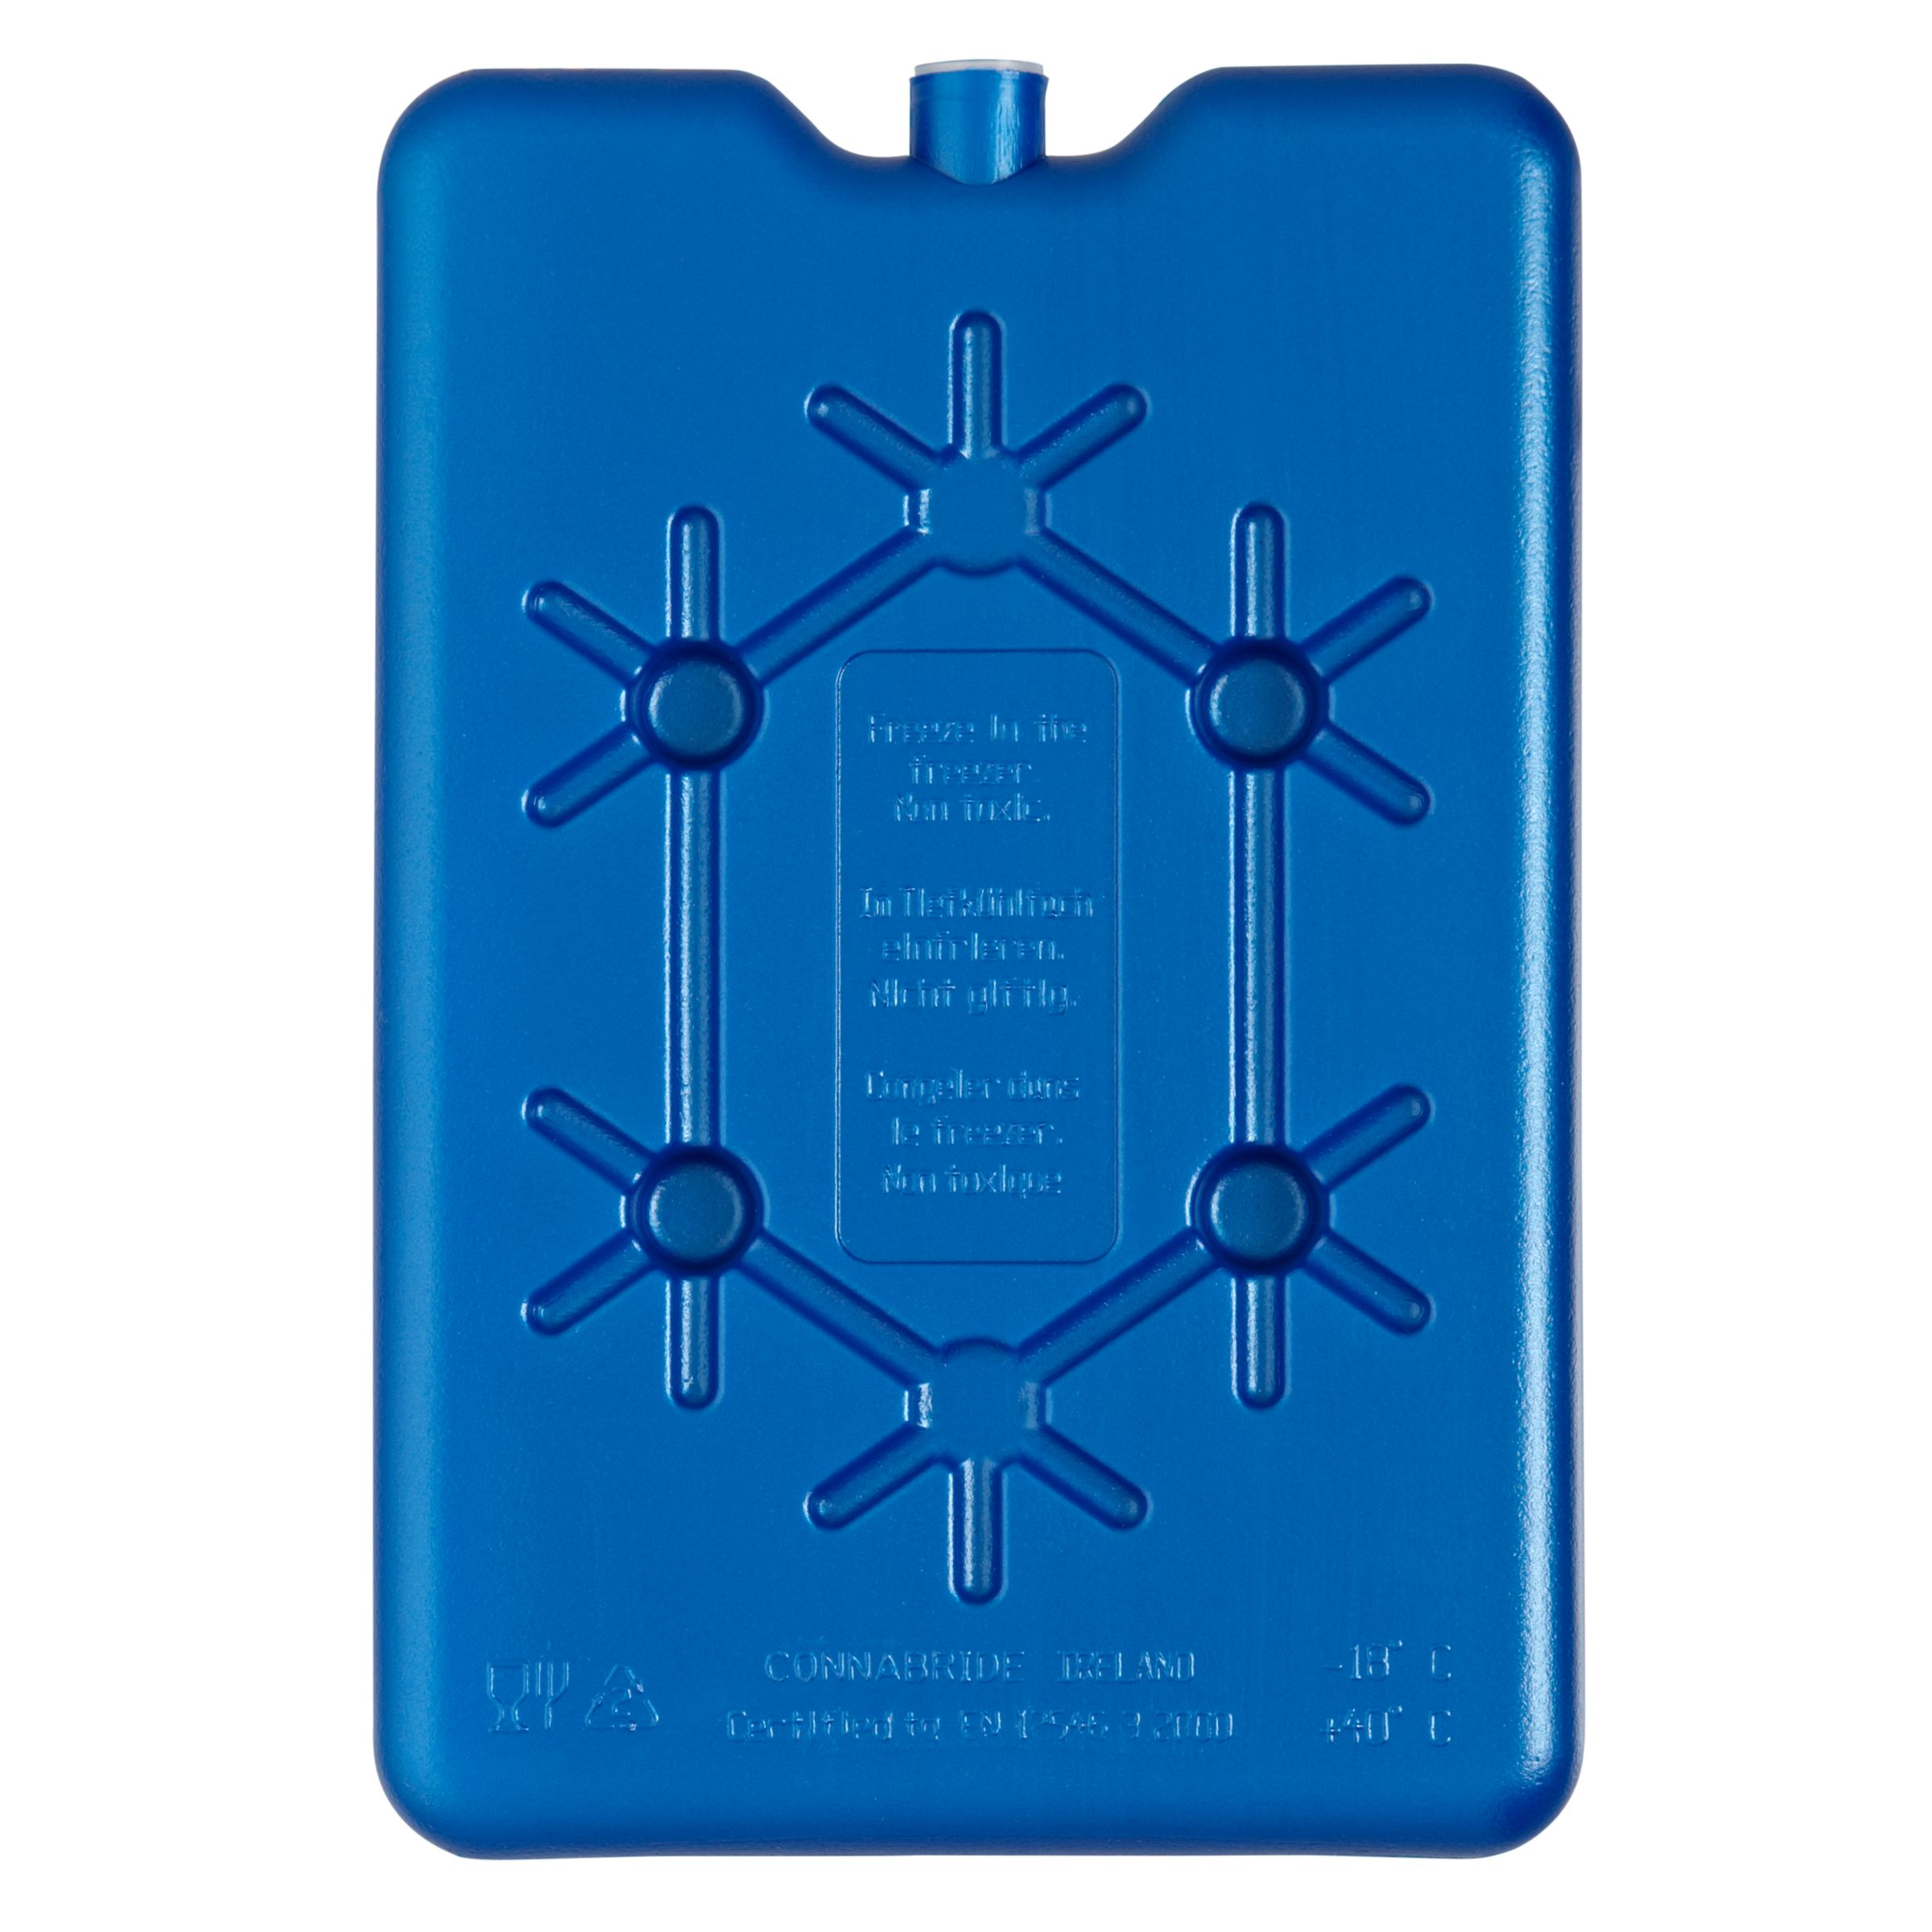 Thermos Freezer Board, Small, 200g